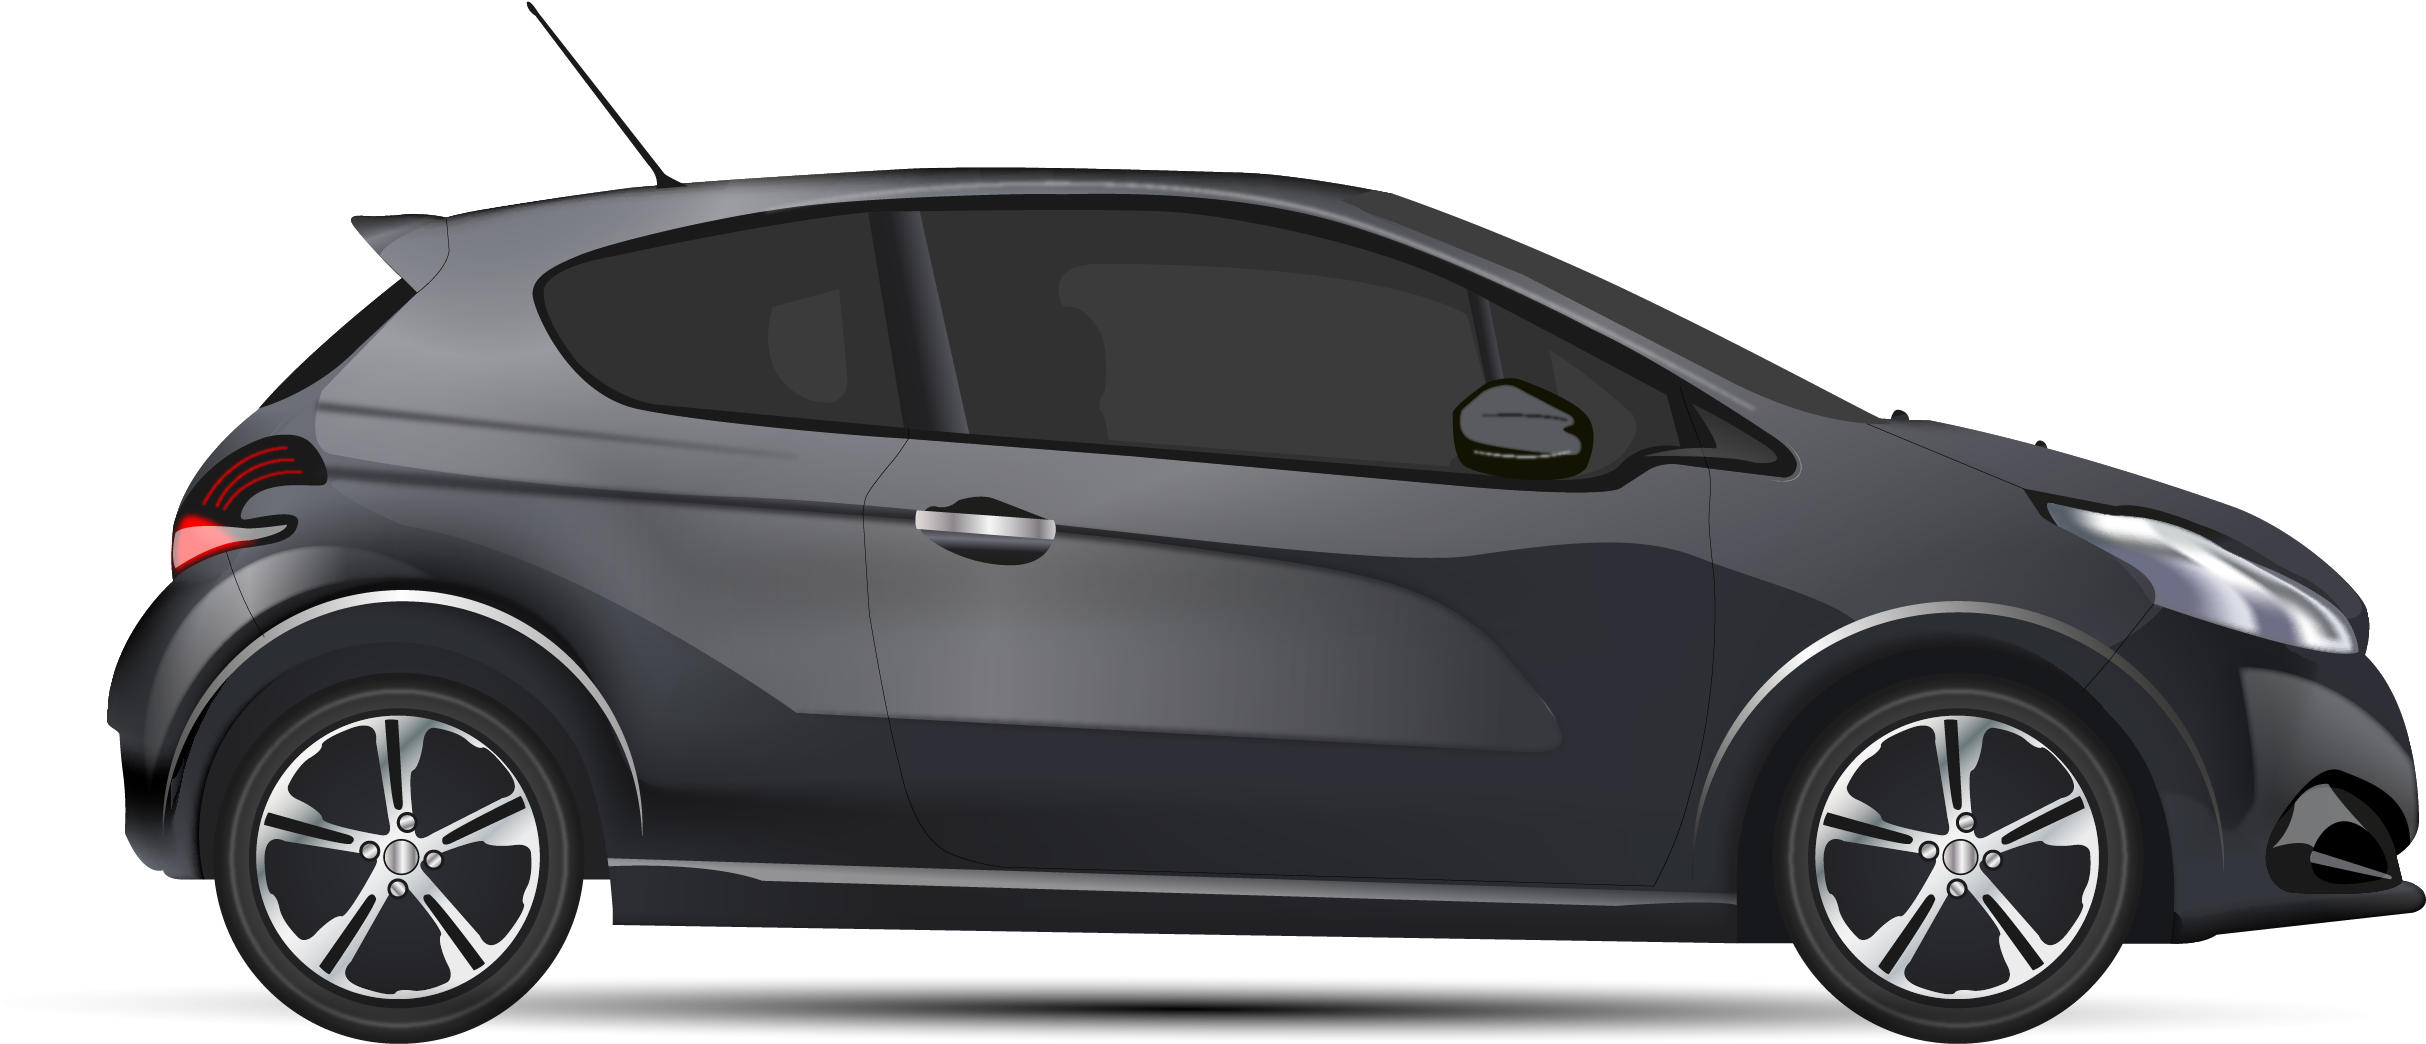 Download Car Png Transparent Free Images Graphic Free Download